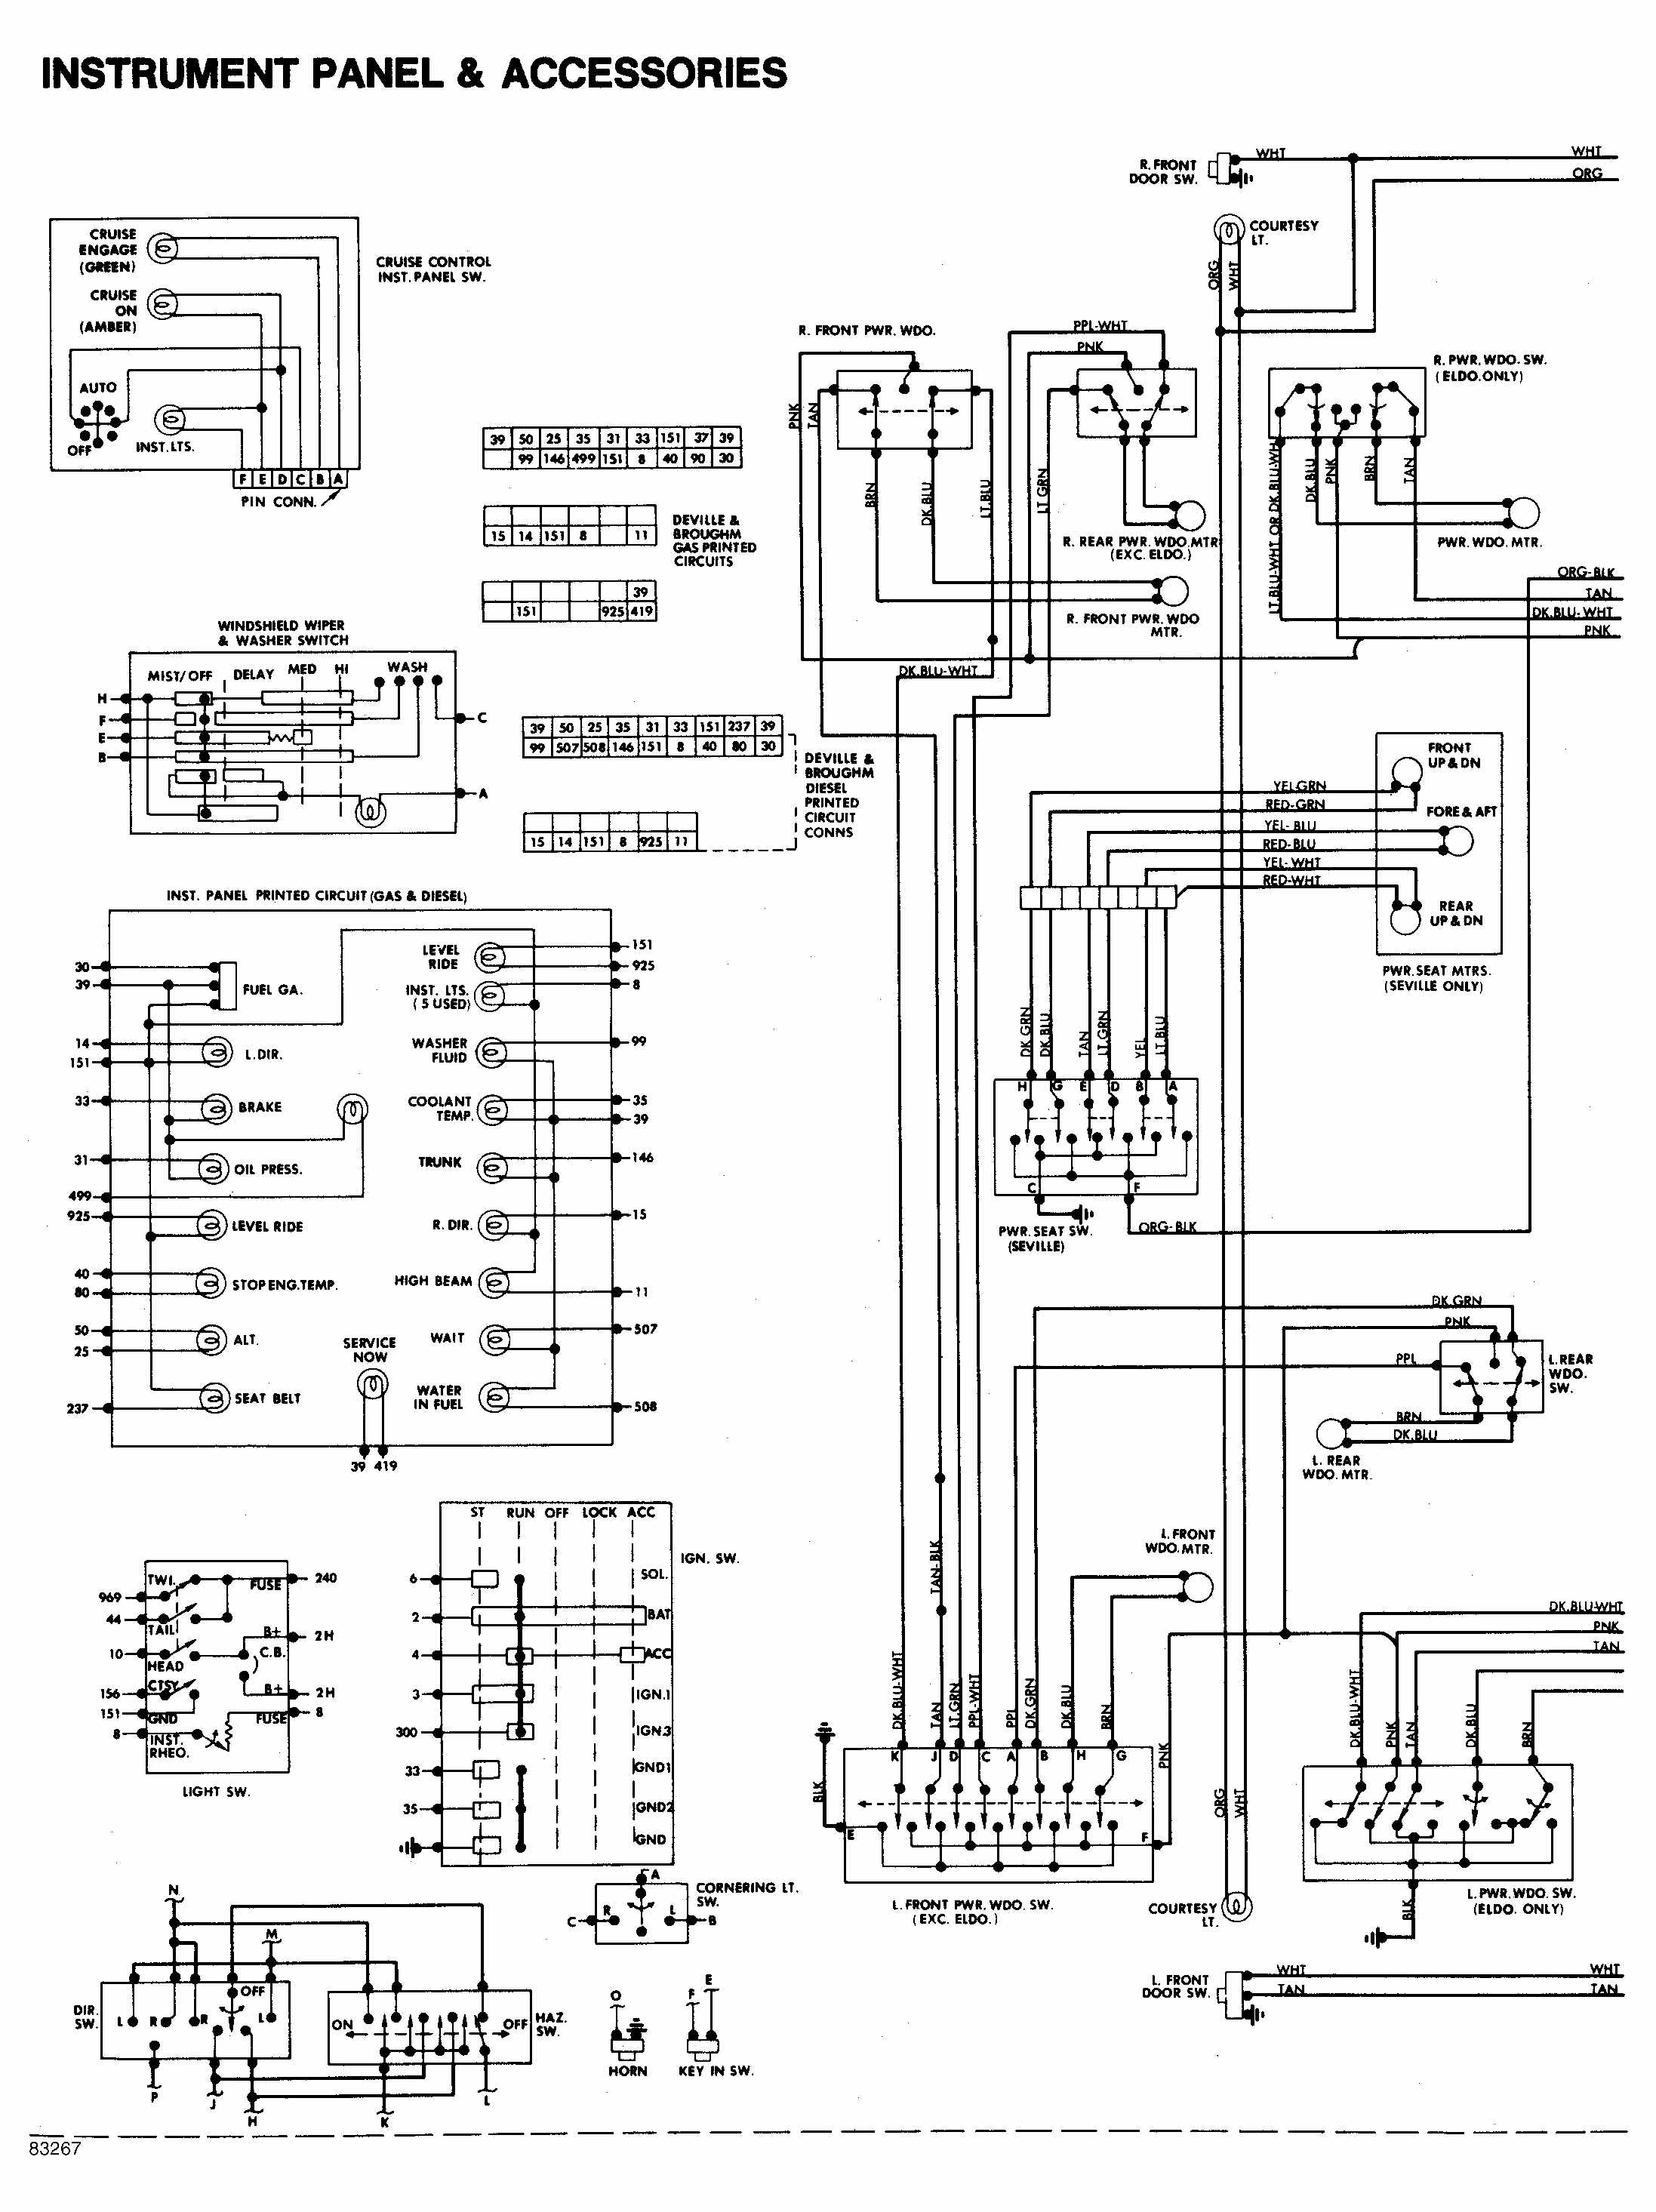 Chevy Power Window Wiring Diagram 2001 Chevy Silverado Power Window Wiring  Diagrams 84 Chevy Power Window Wiring Diagram